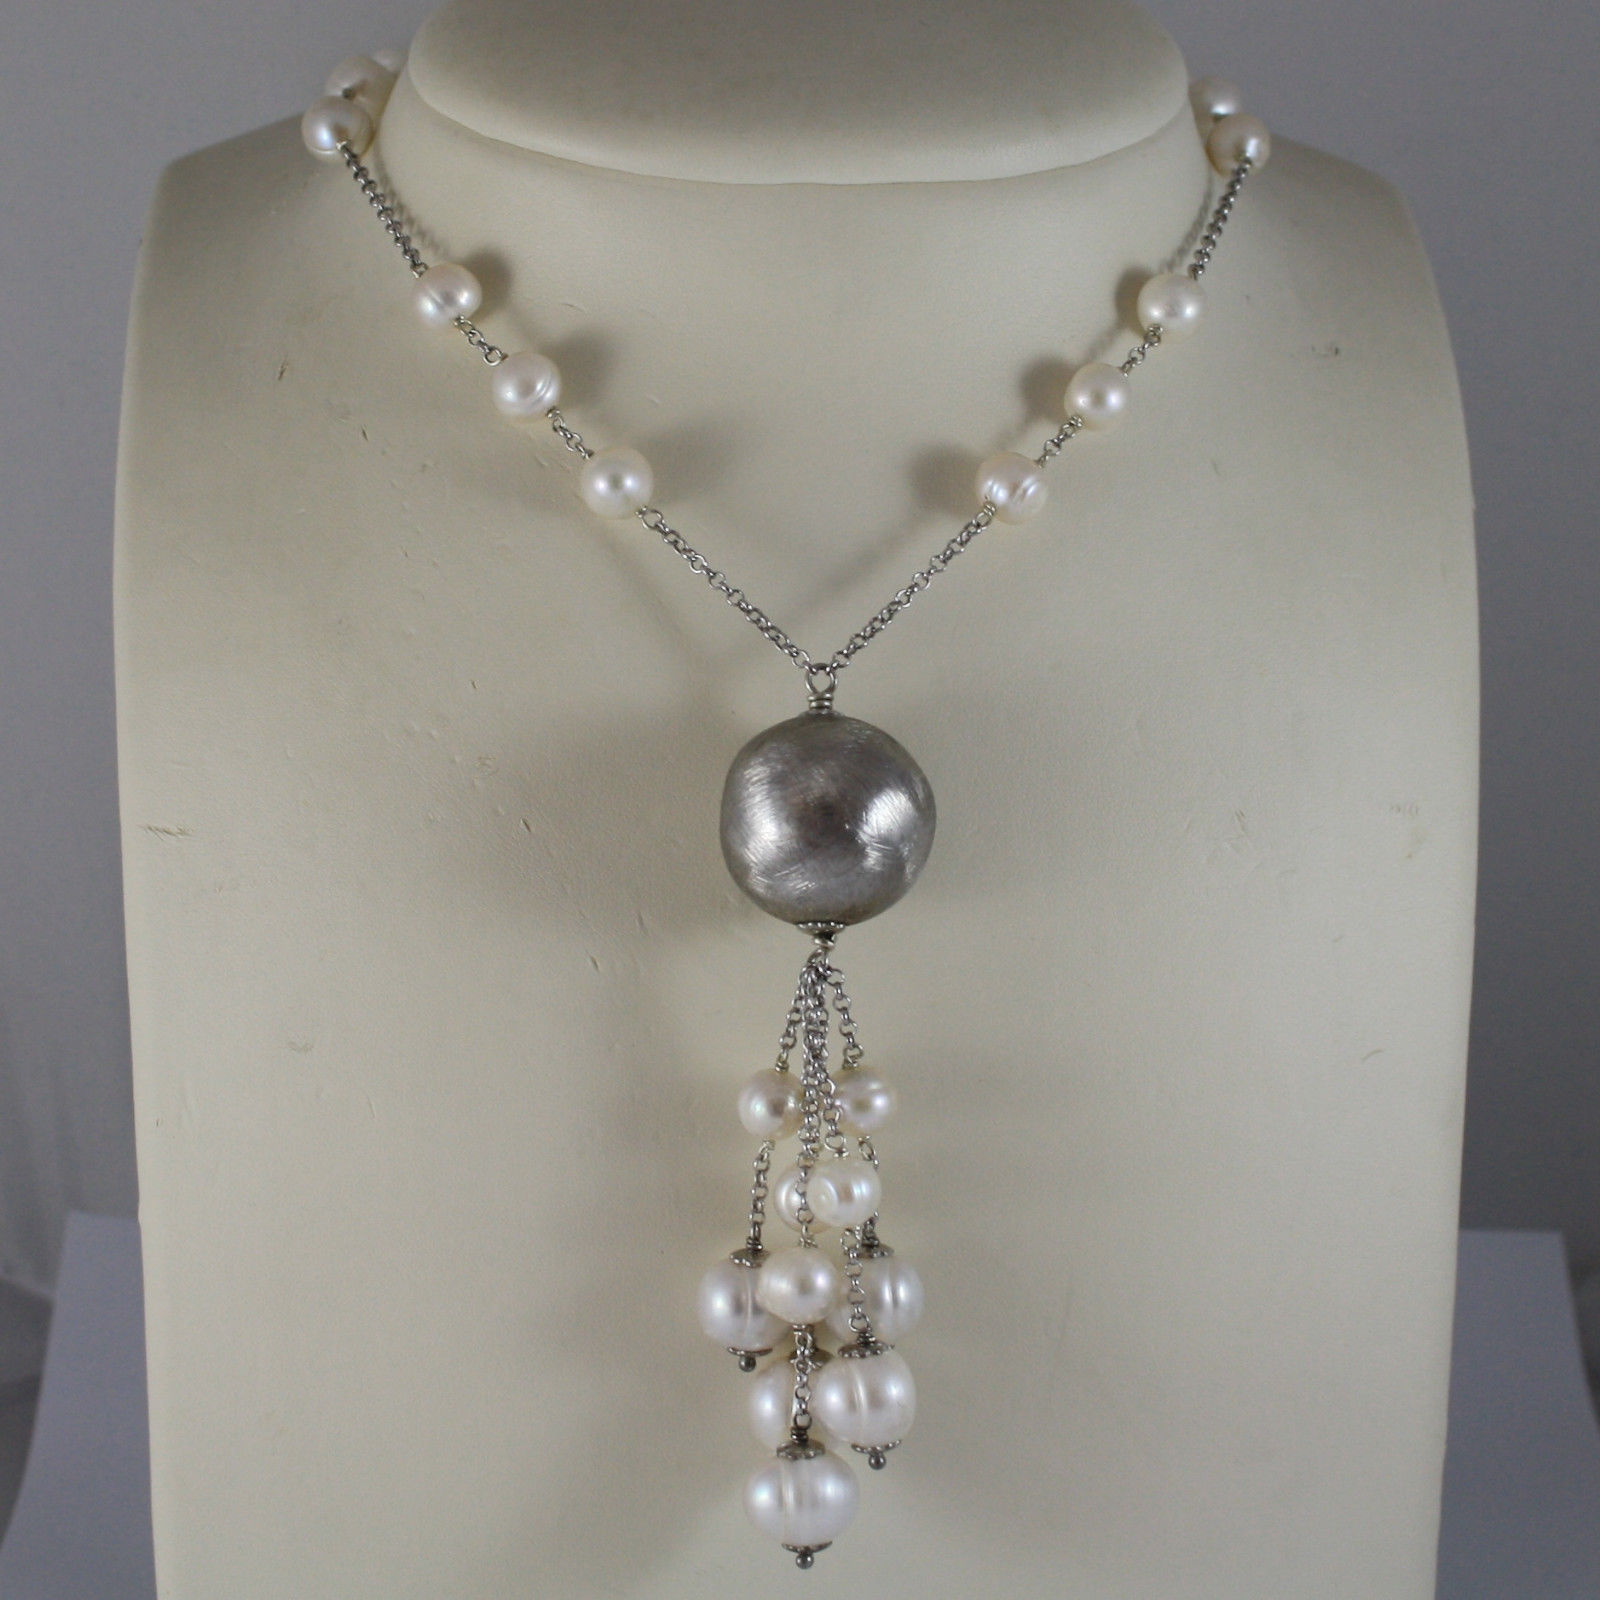 .925 RHODIUM SILVER LONG NECKLACE WITH WHITE FRESHWATER PEARLS AND SILVER BALL